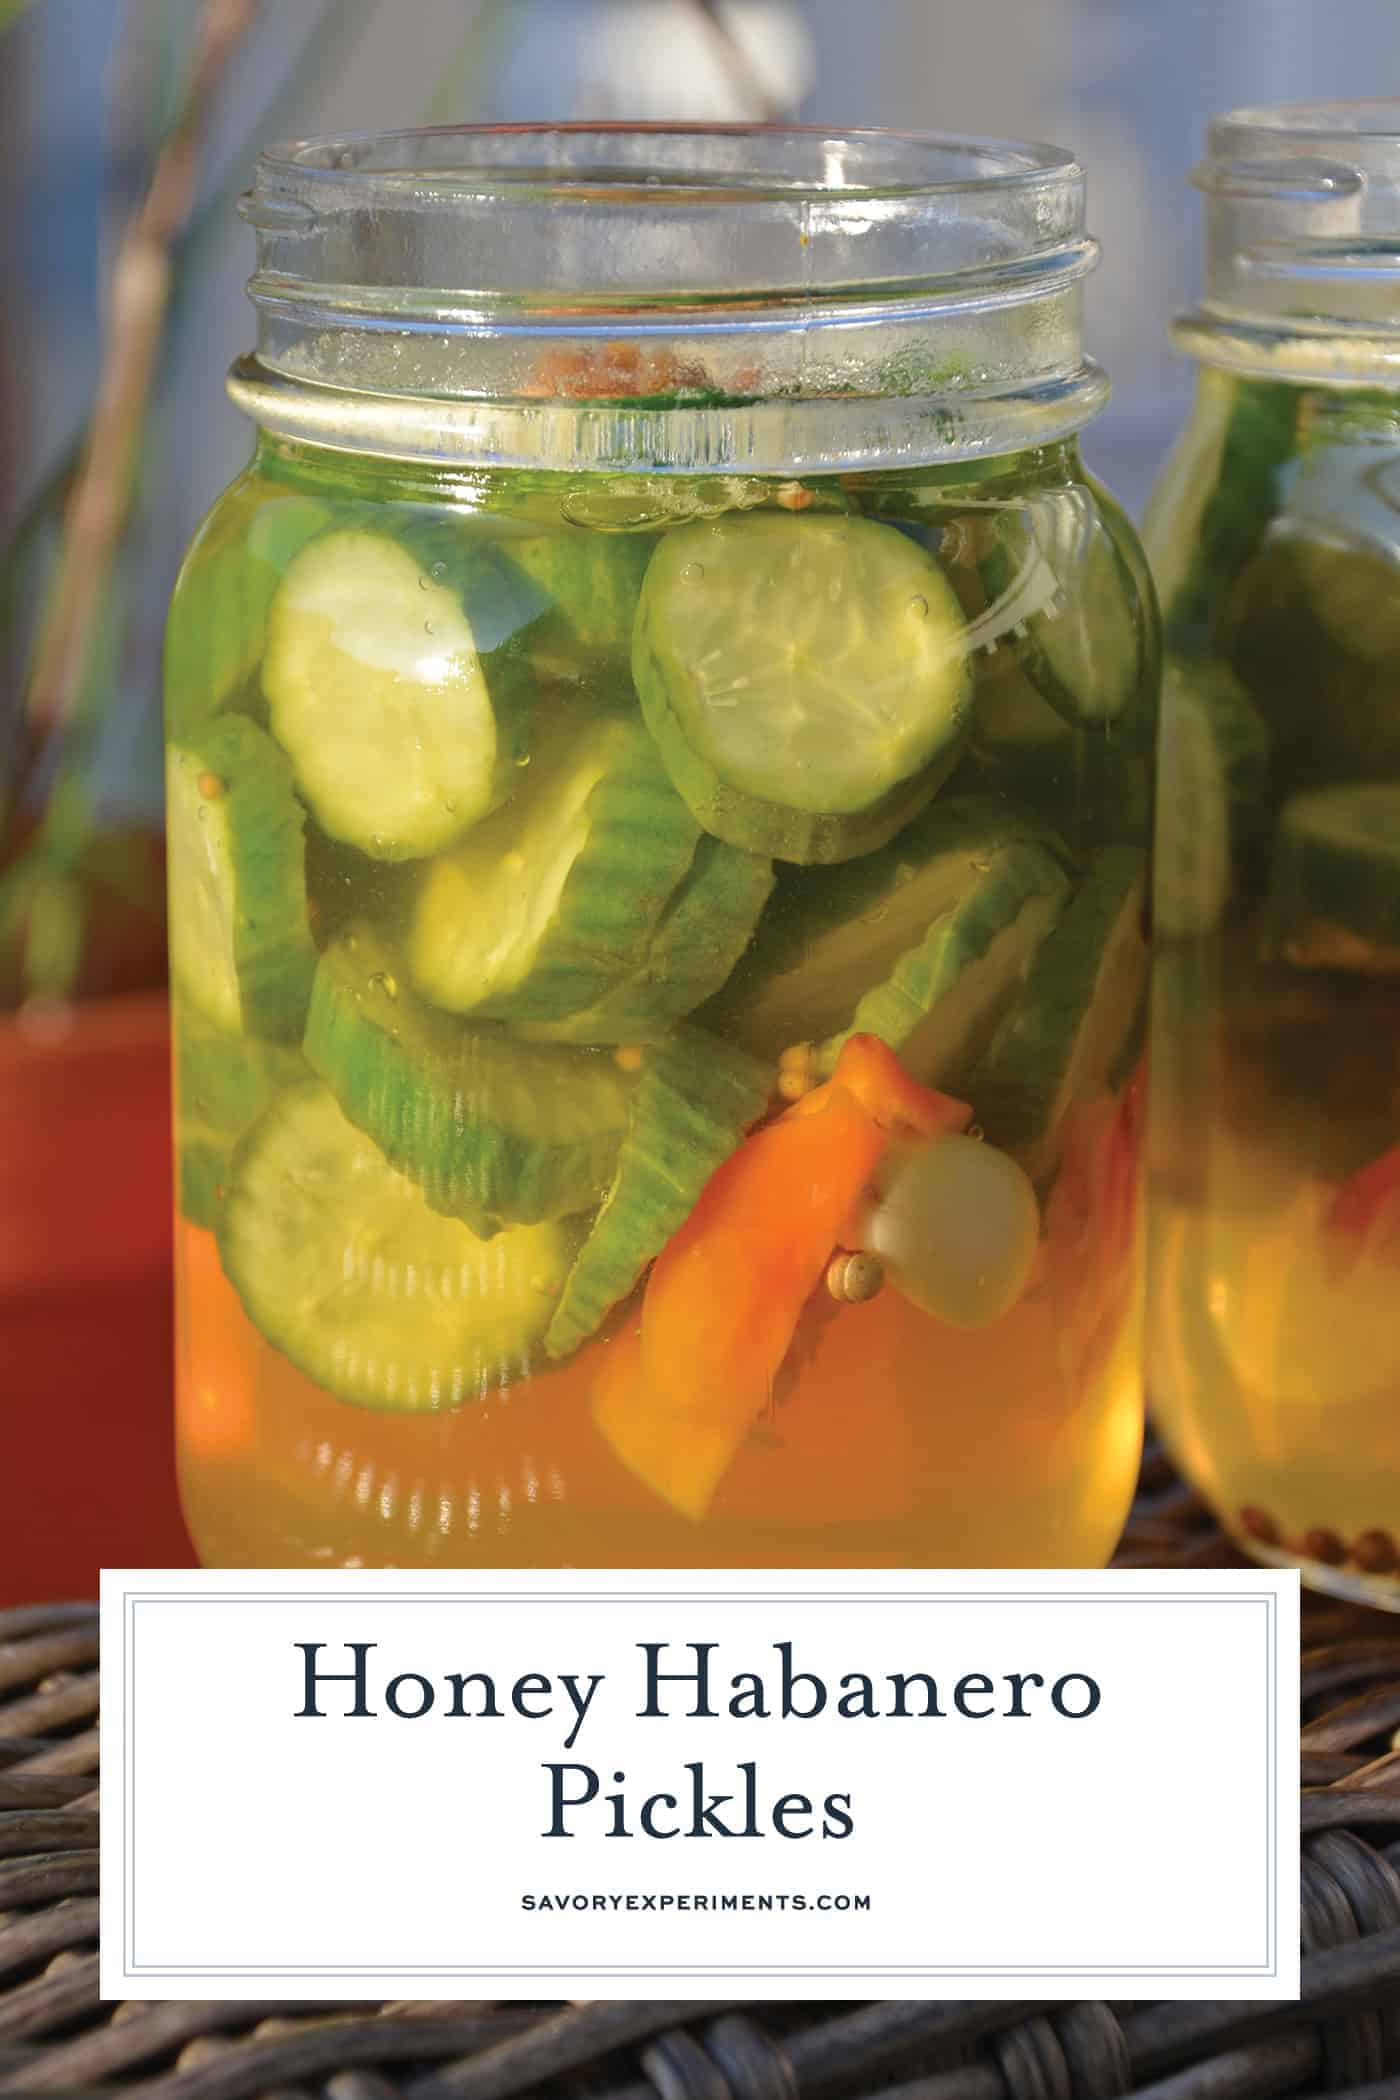 Honey Habanero Pickles in a jar